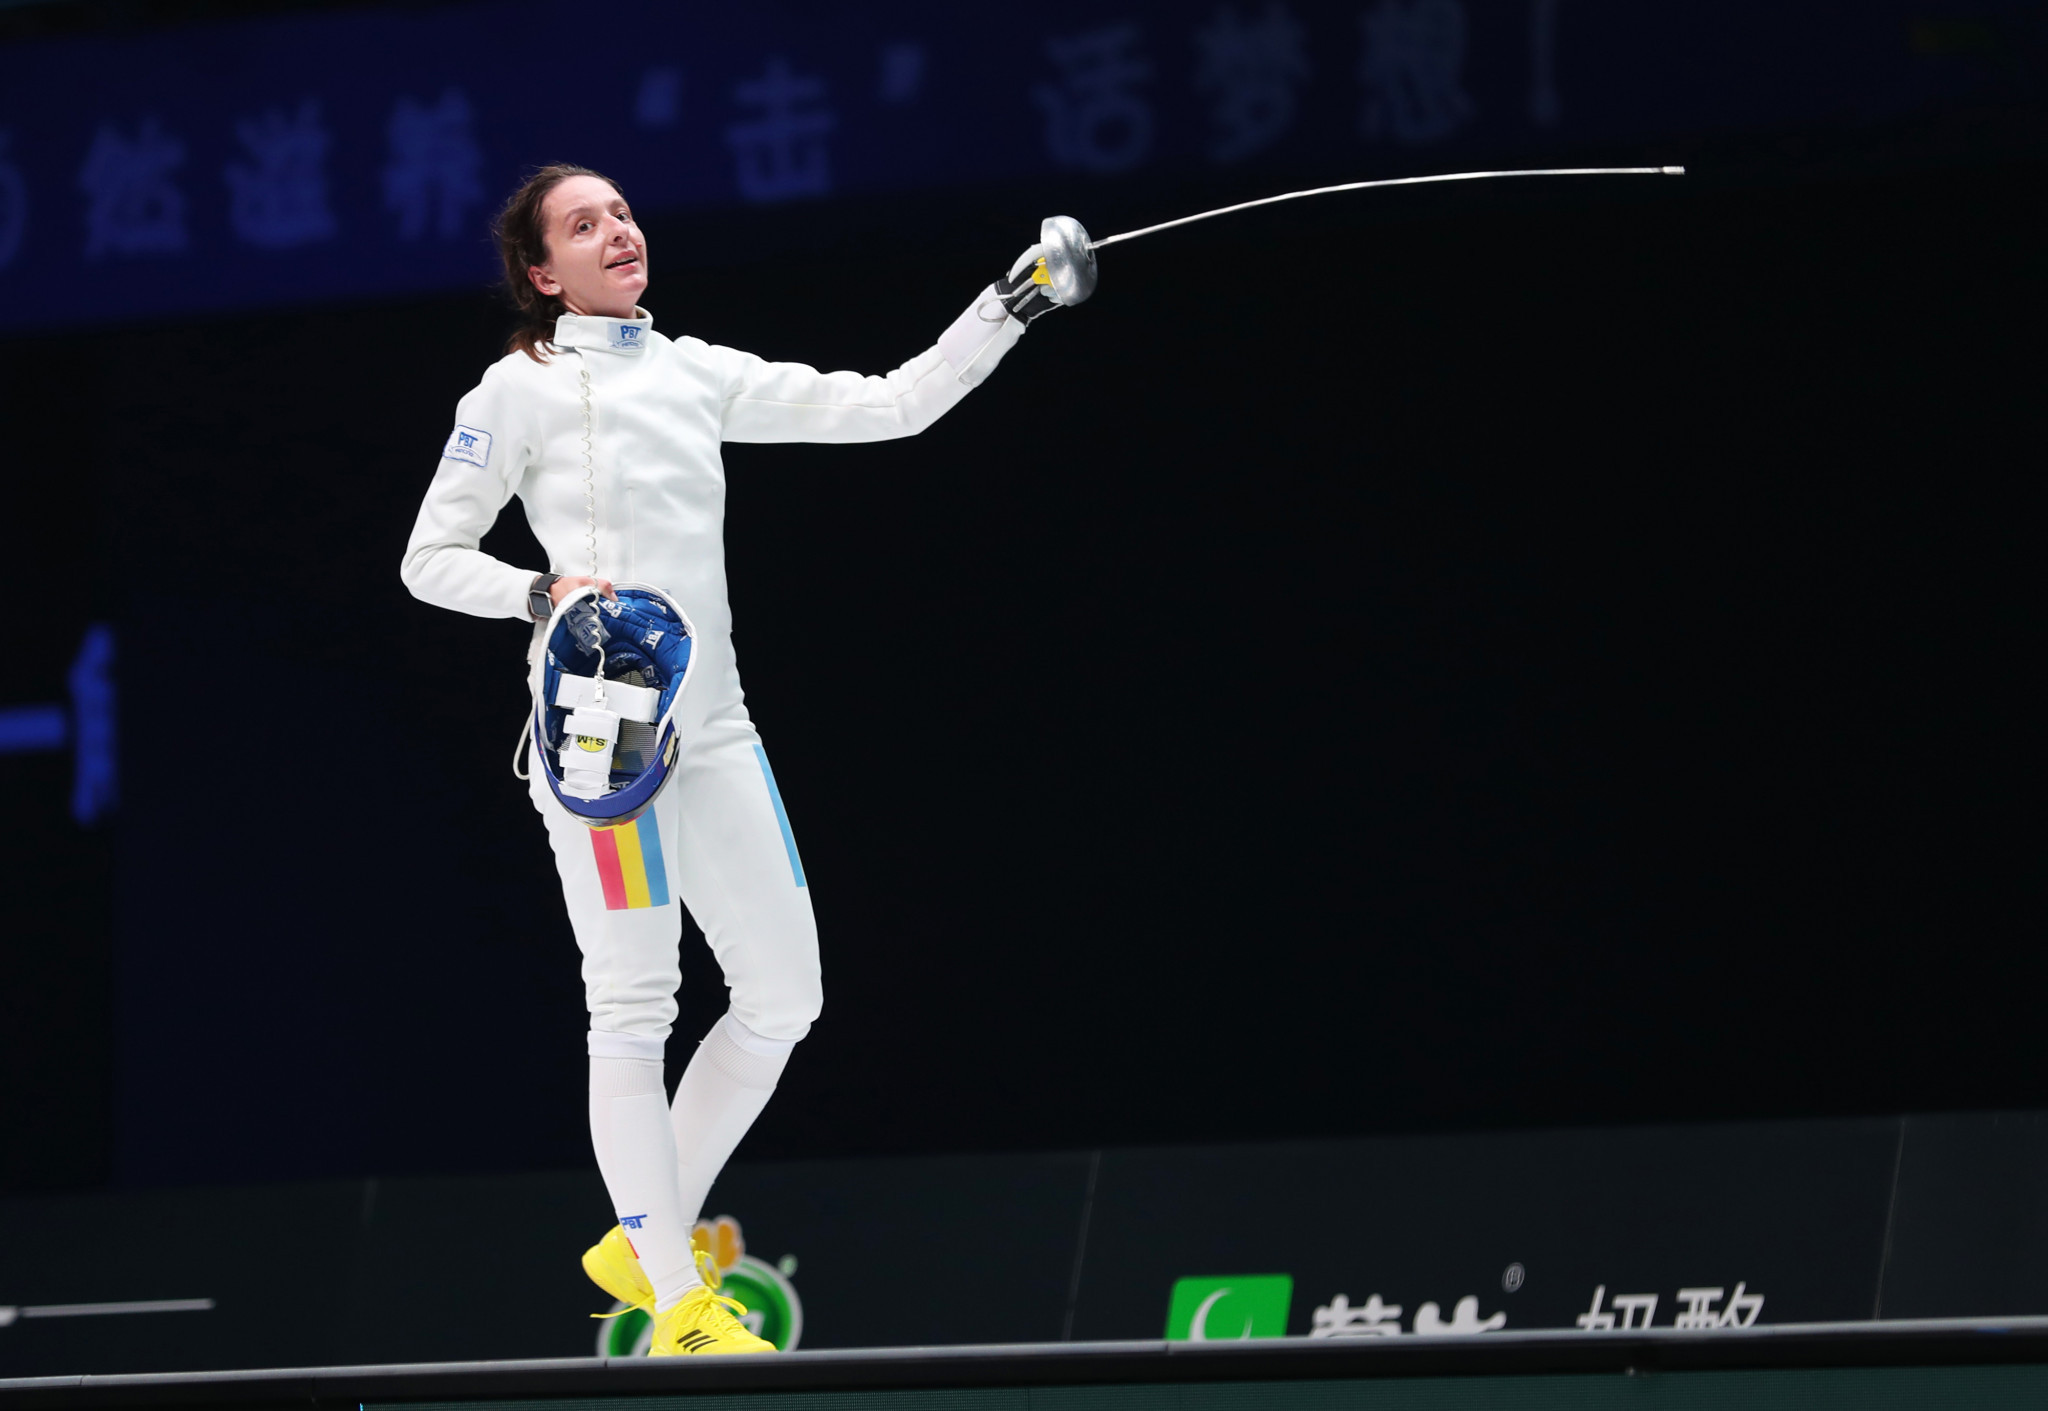 Top-ranked Ana Maria Popescu of Romania will face France's Océane Tahe in the last 64 of the FIE Women's Épée World Cup in Dubai ©Getty Images